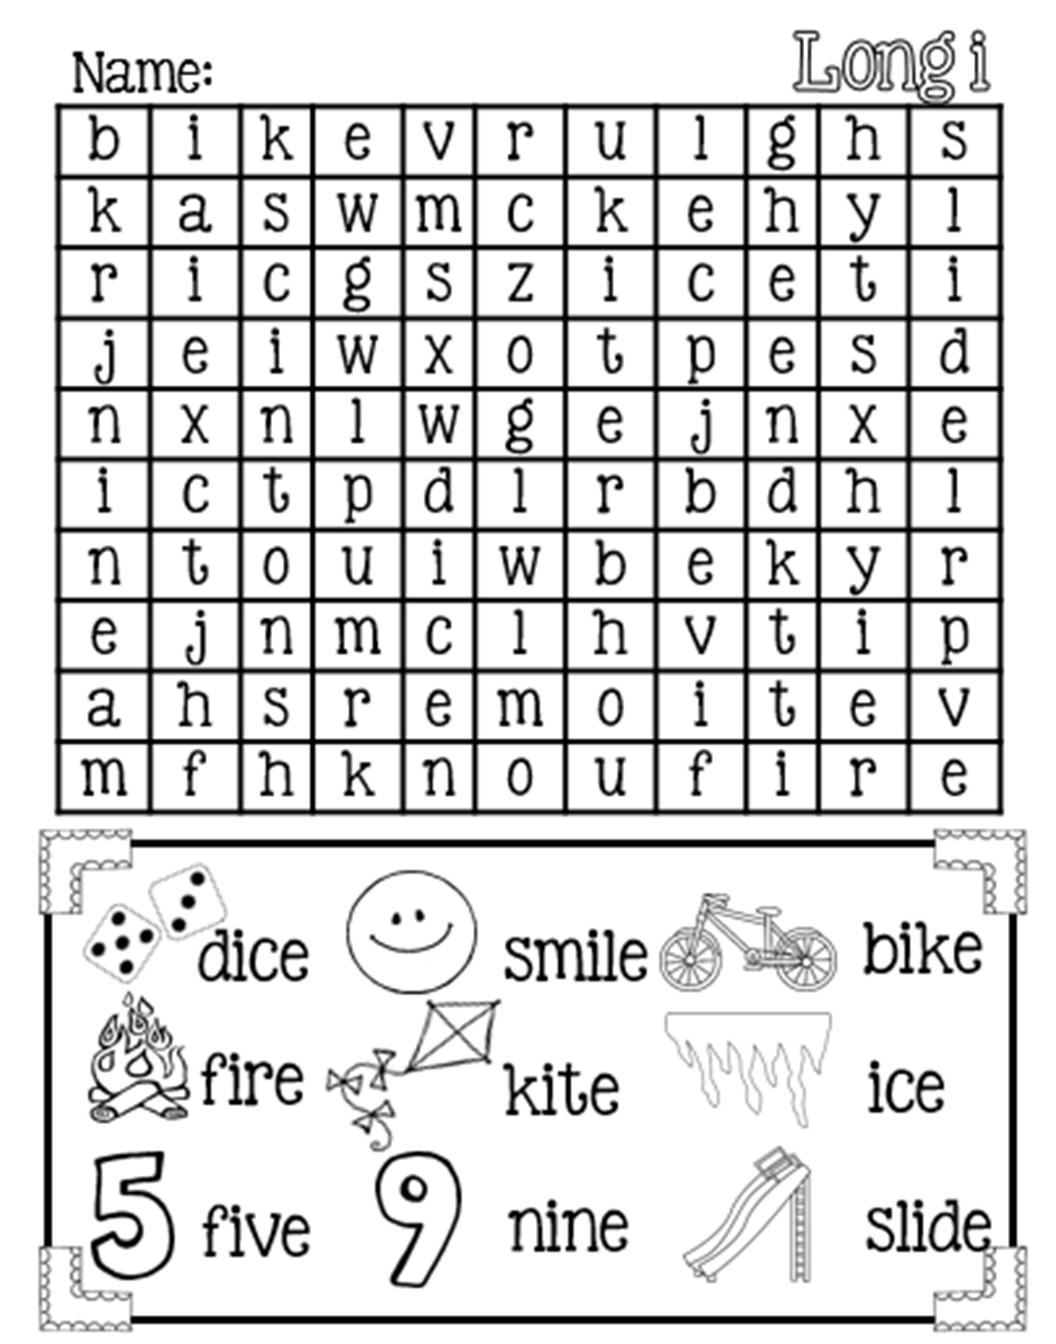 Magic E Long I Word Search Free